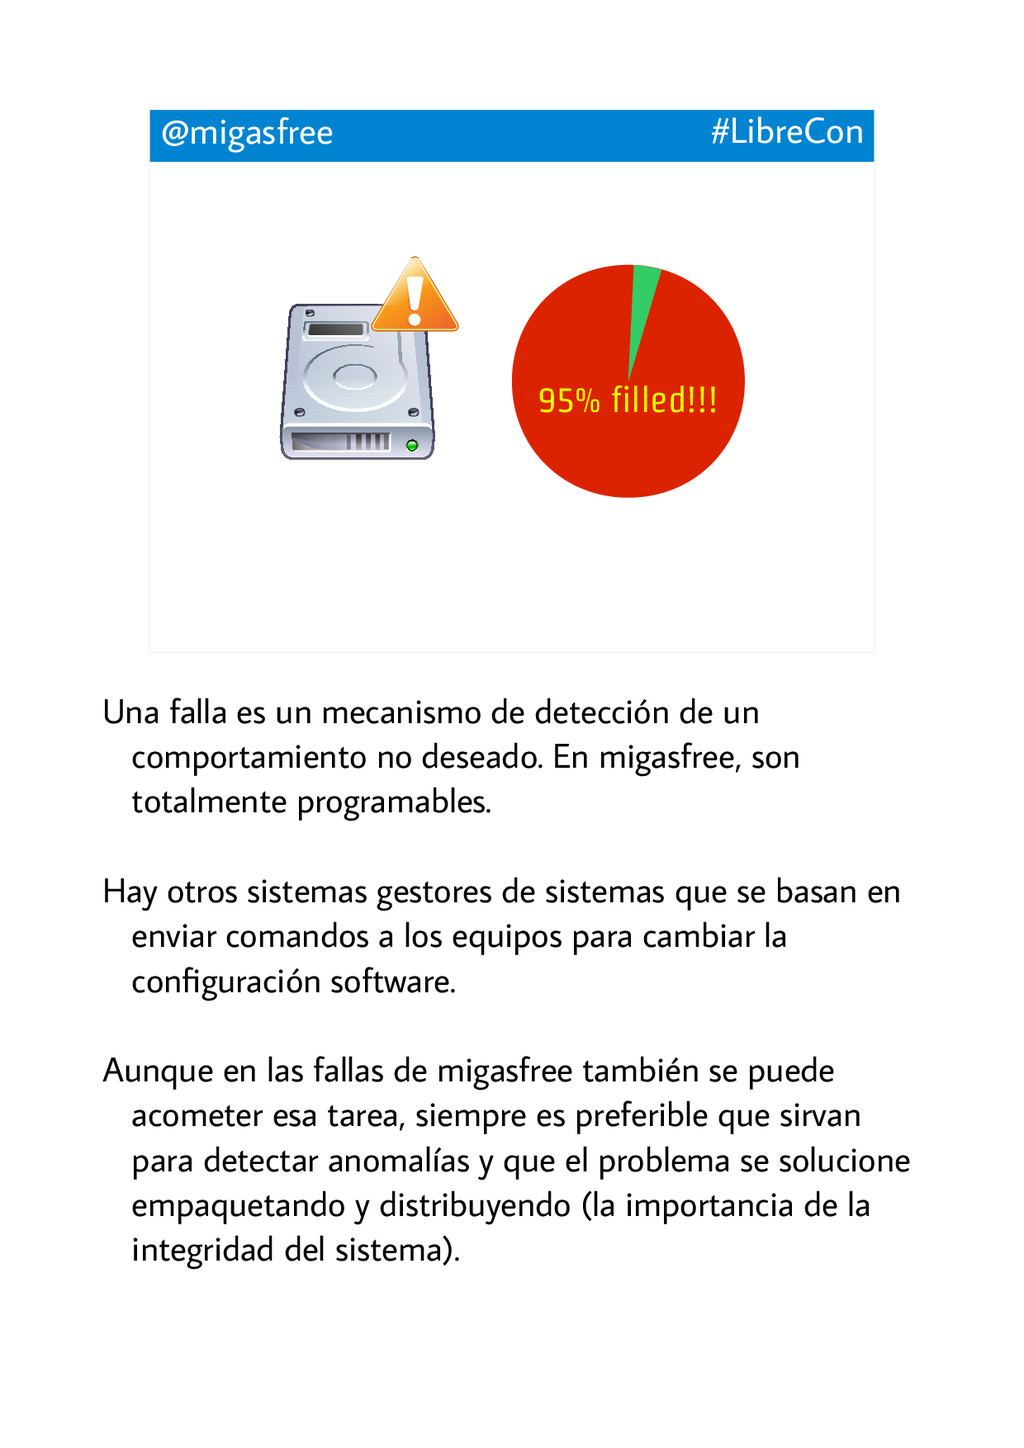 @migasfree #LibreCon 95% filled!!! Una falla es...